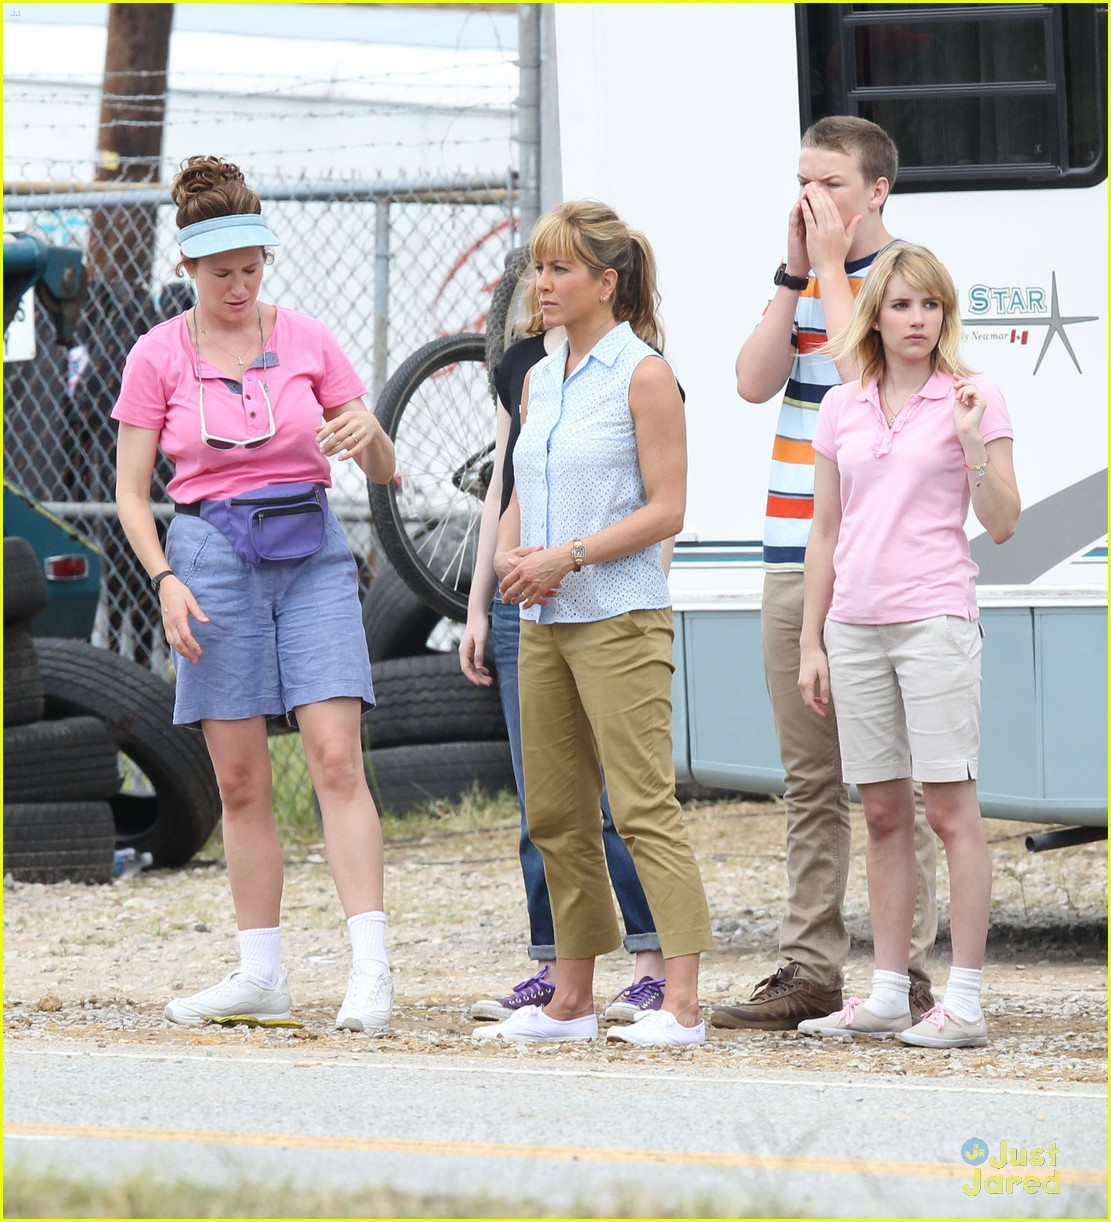 Emma Roberts We Re The Millers In Wilmington Photo 484438 Emma Roberts Will Poulter Pictures Just Jared Jr